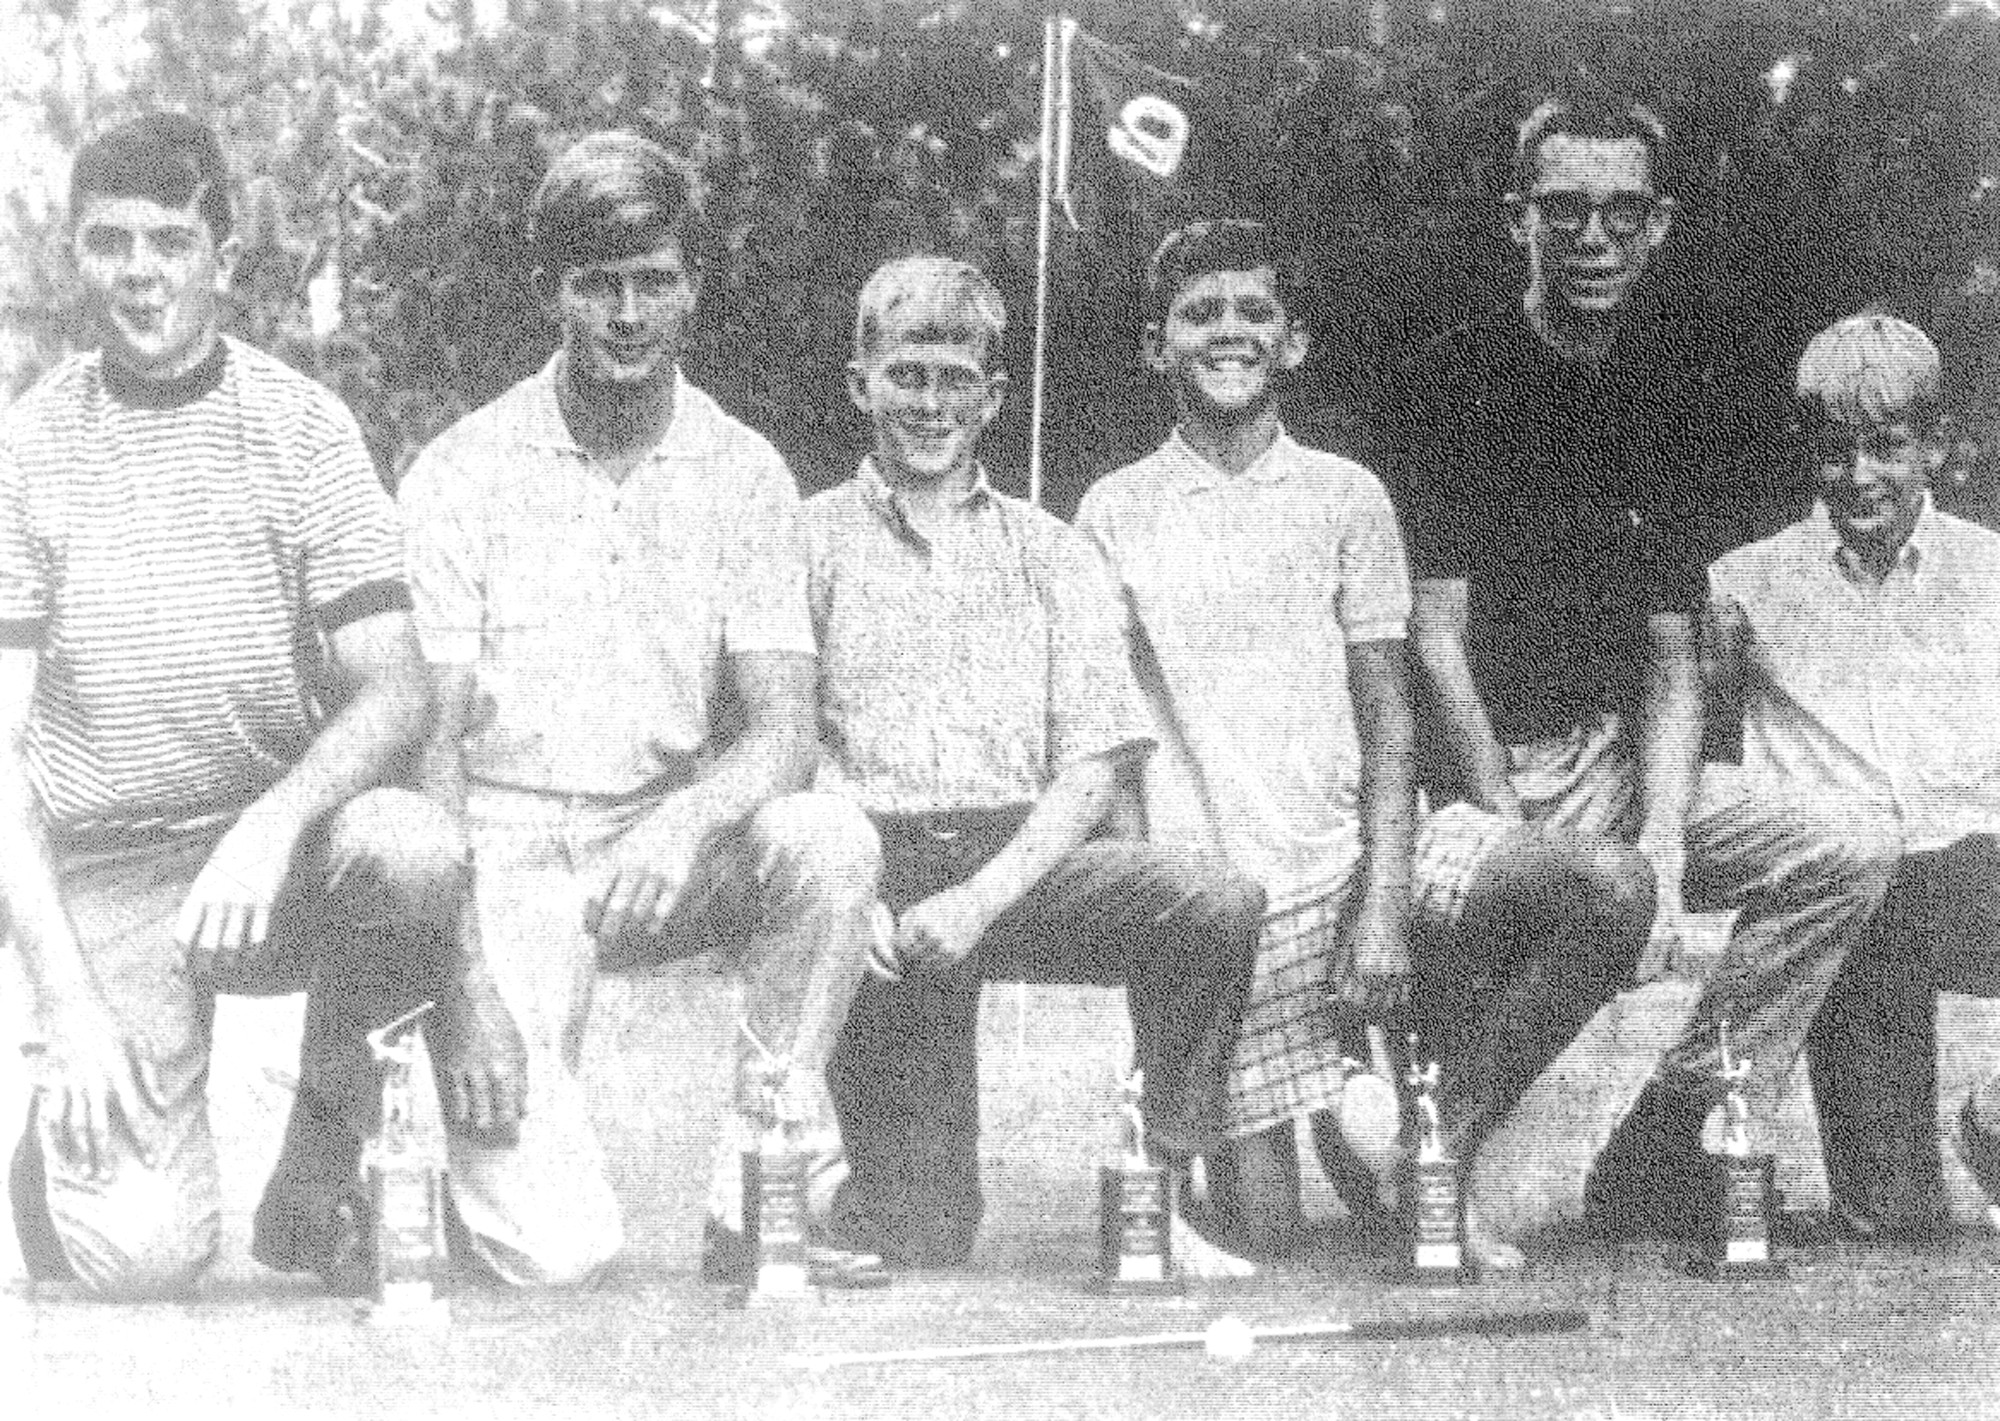 Flight winners of the Junior Golf Championship Tournament held at Sunset Country Club in September 1968 were, from left, Scotty Broome, Ed Bell, Jay Richardson, John Broome, Harvin Bullock and Dave Colquitt Jr.